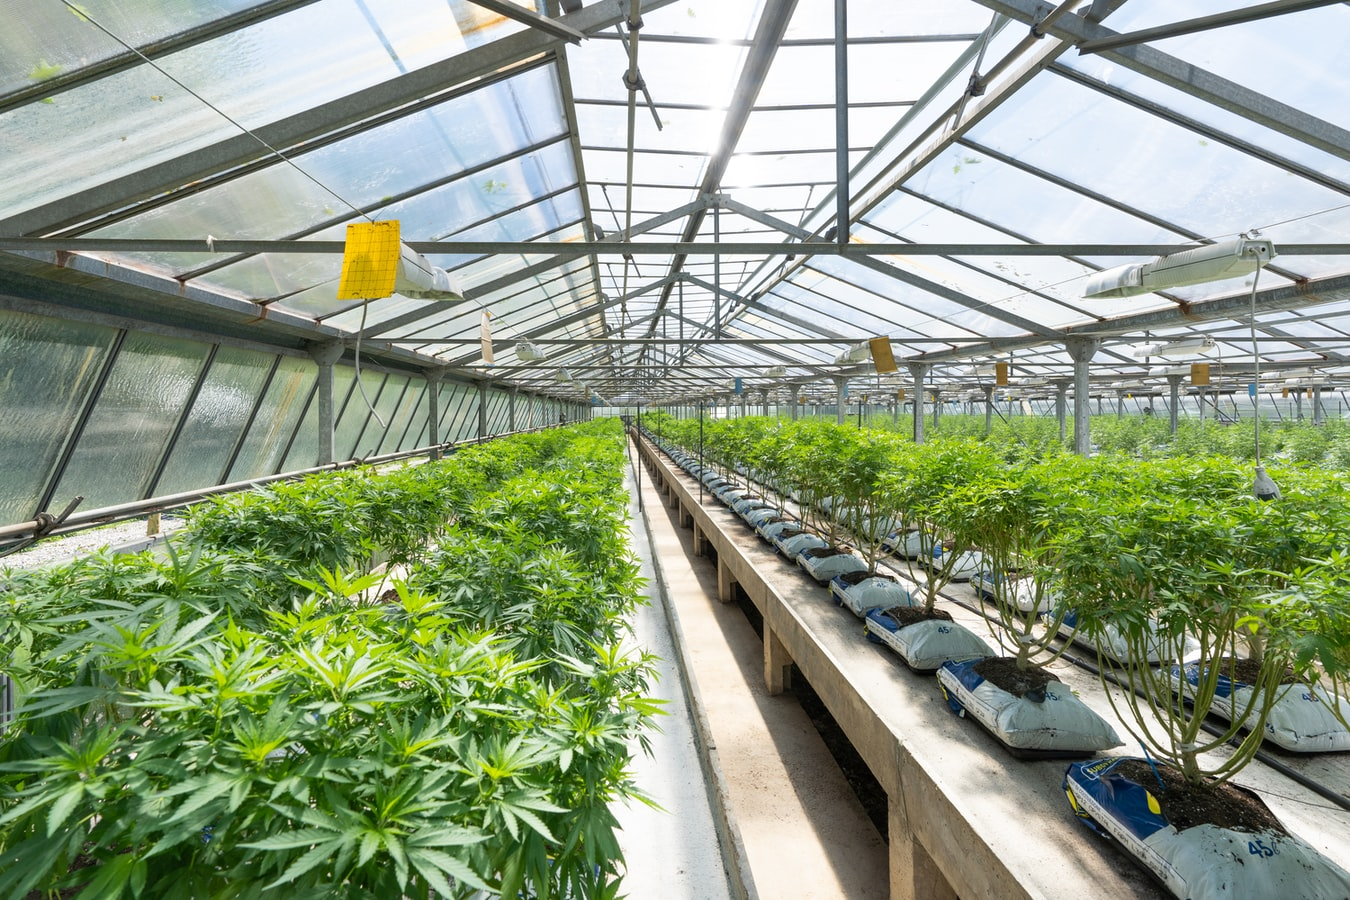 Cannabis Industry Prospects Brighten; Risks, Challenges Remain